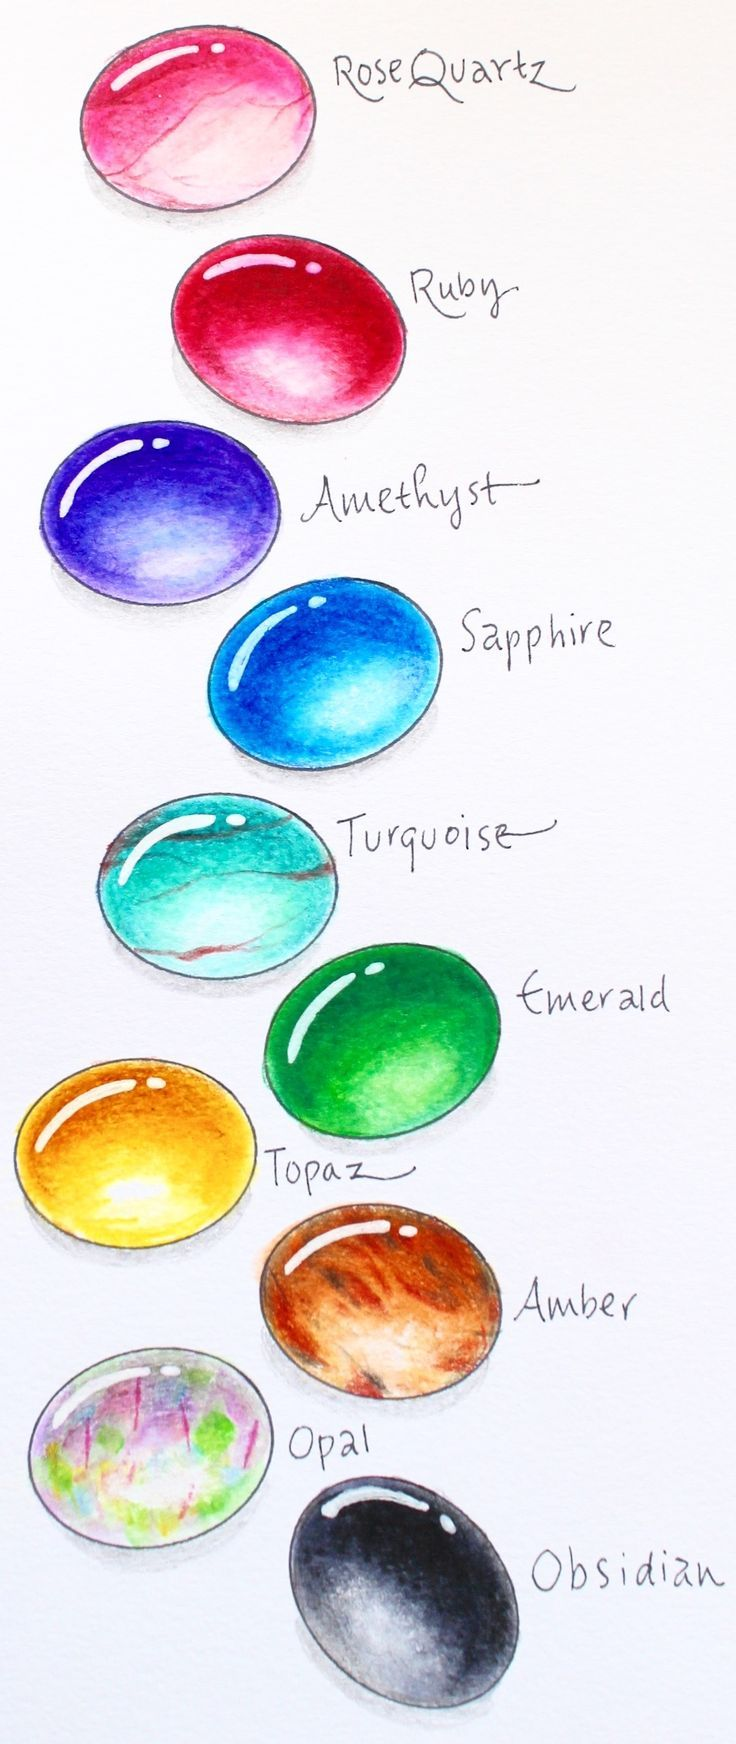 How to draw gems with markers and colored pencils step by step tutorial from tombowusa and mariebrowning1